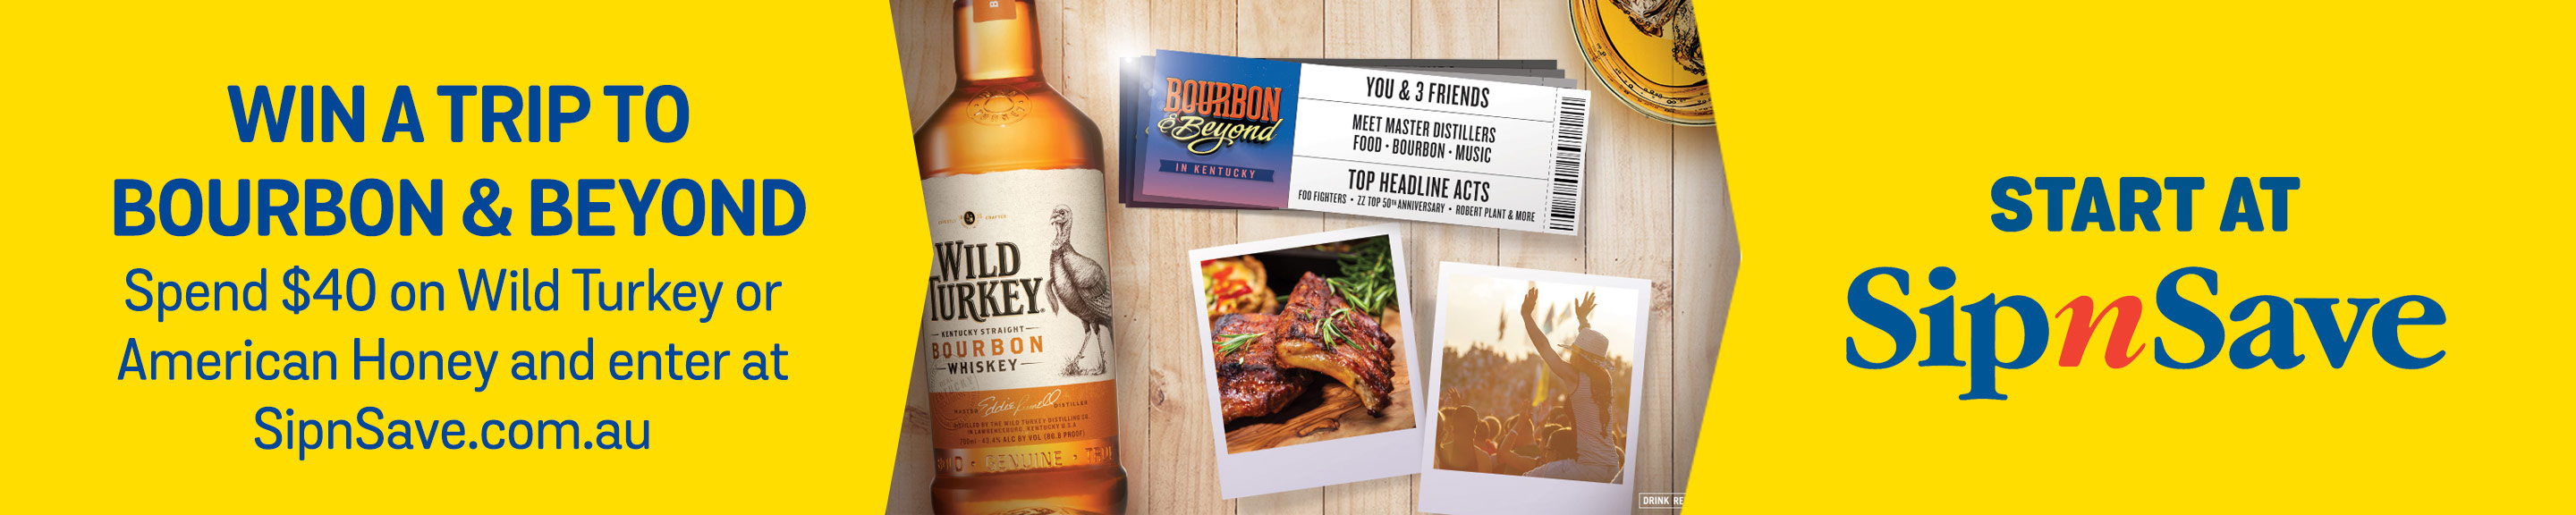 Win a trip to the Bourbon and Beyond Festival